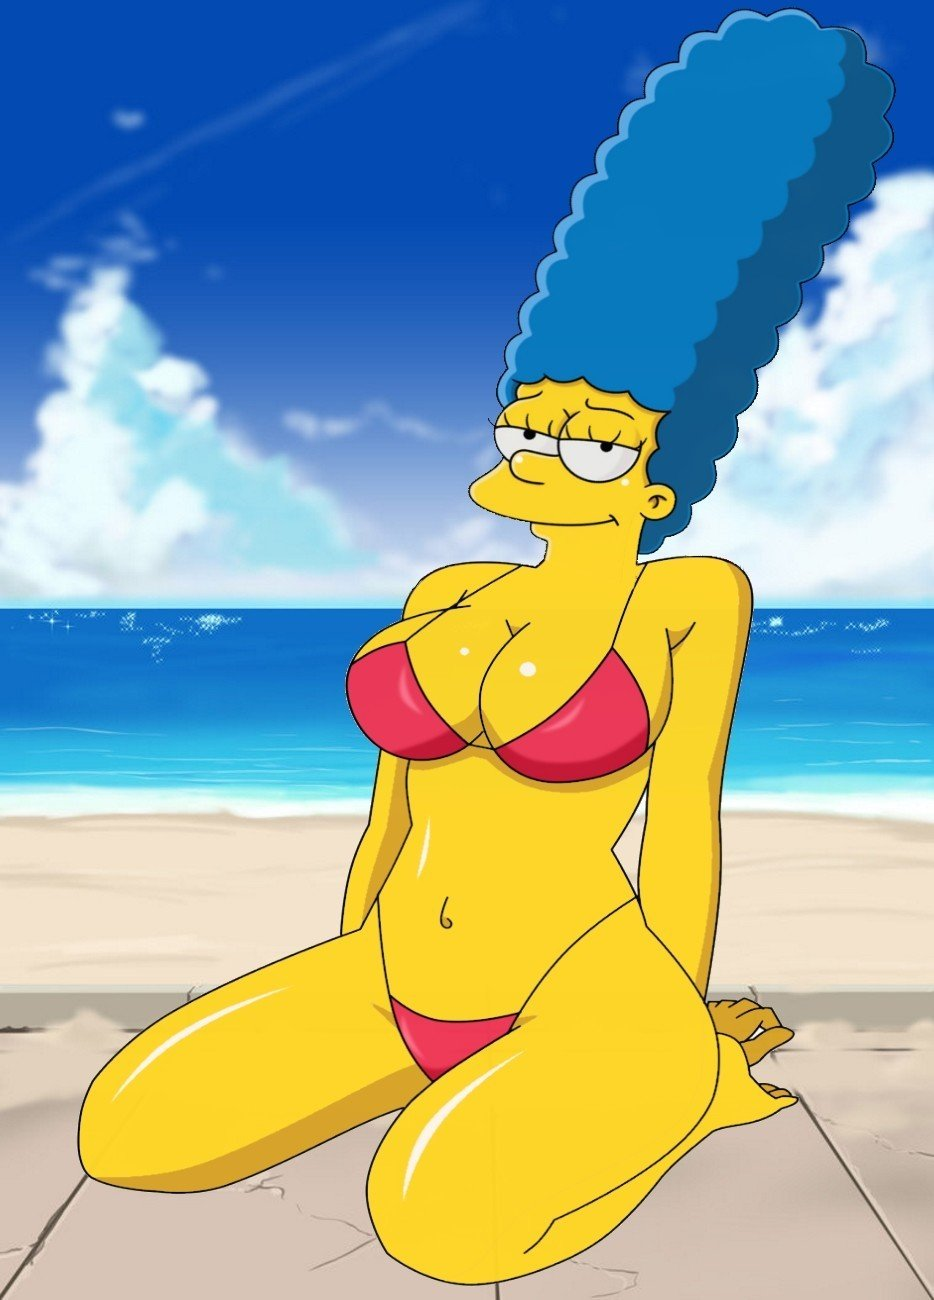 marge-simpson-naked-pictures-american-porn-actress-hot